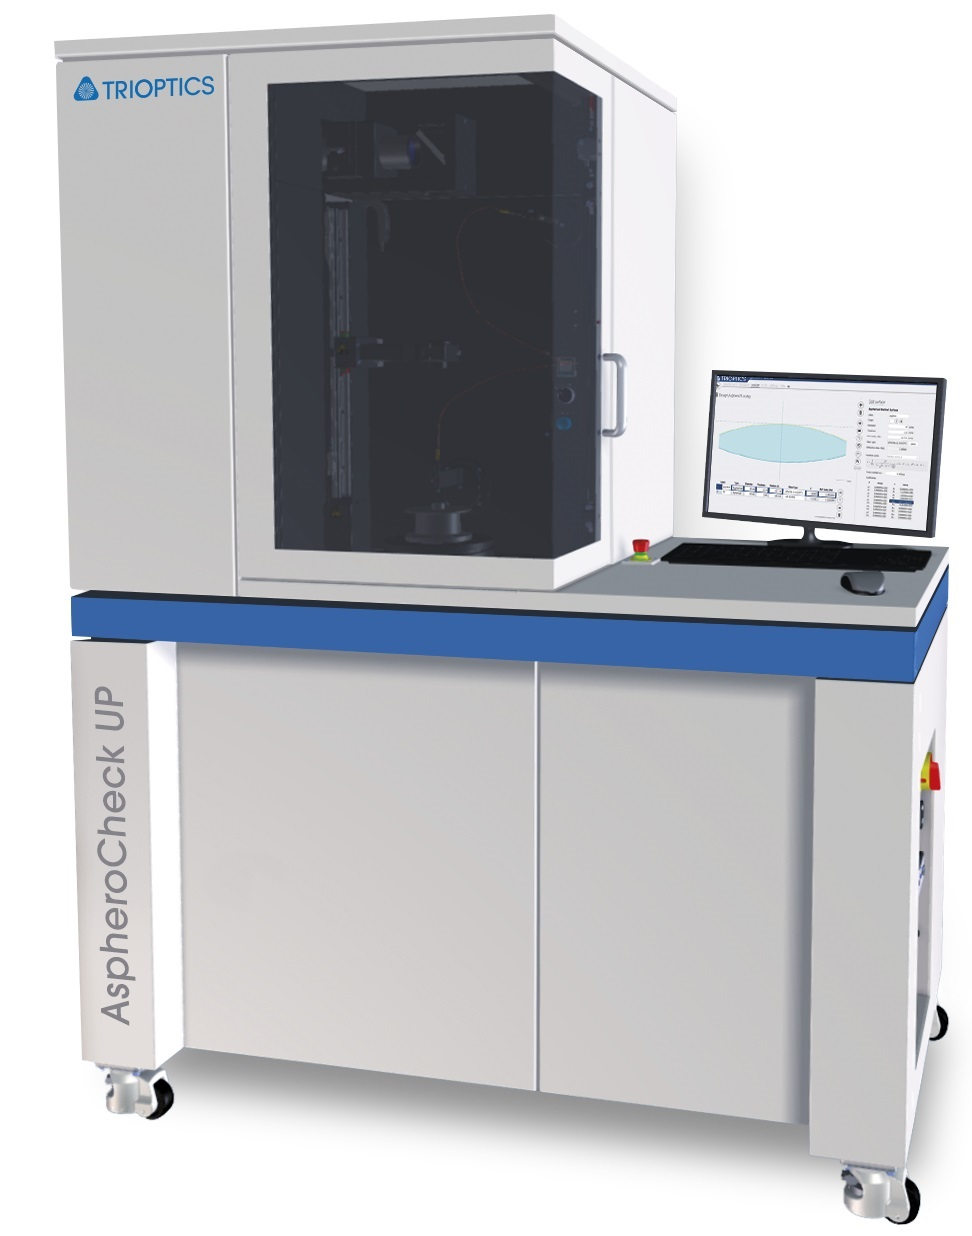 AspheroCheck UP with fully automated measurement